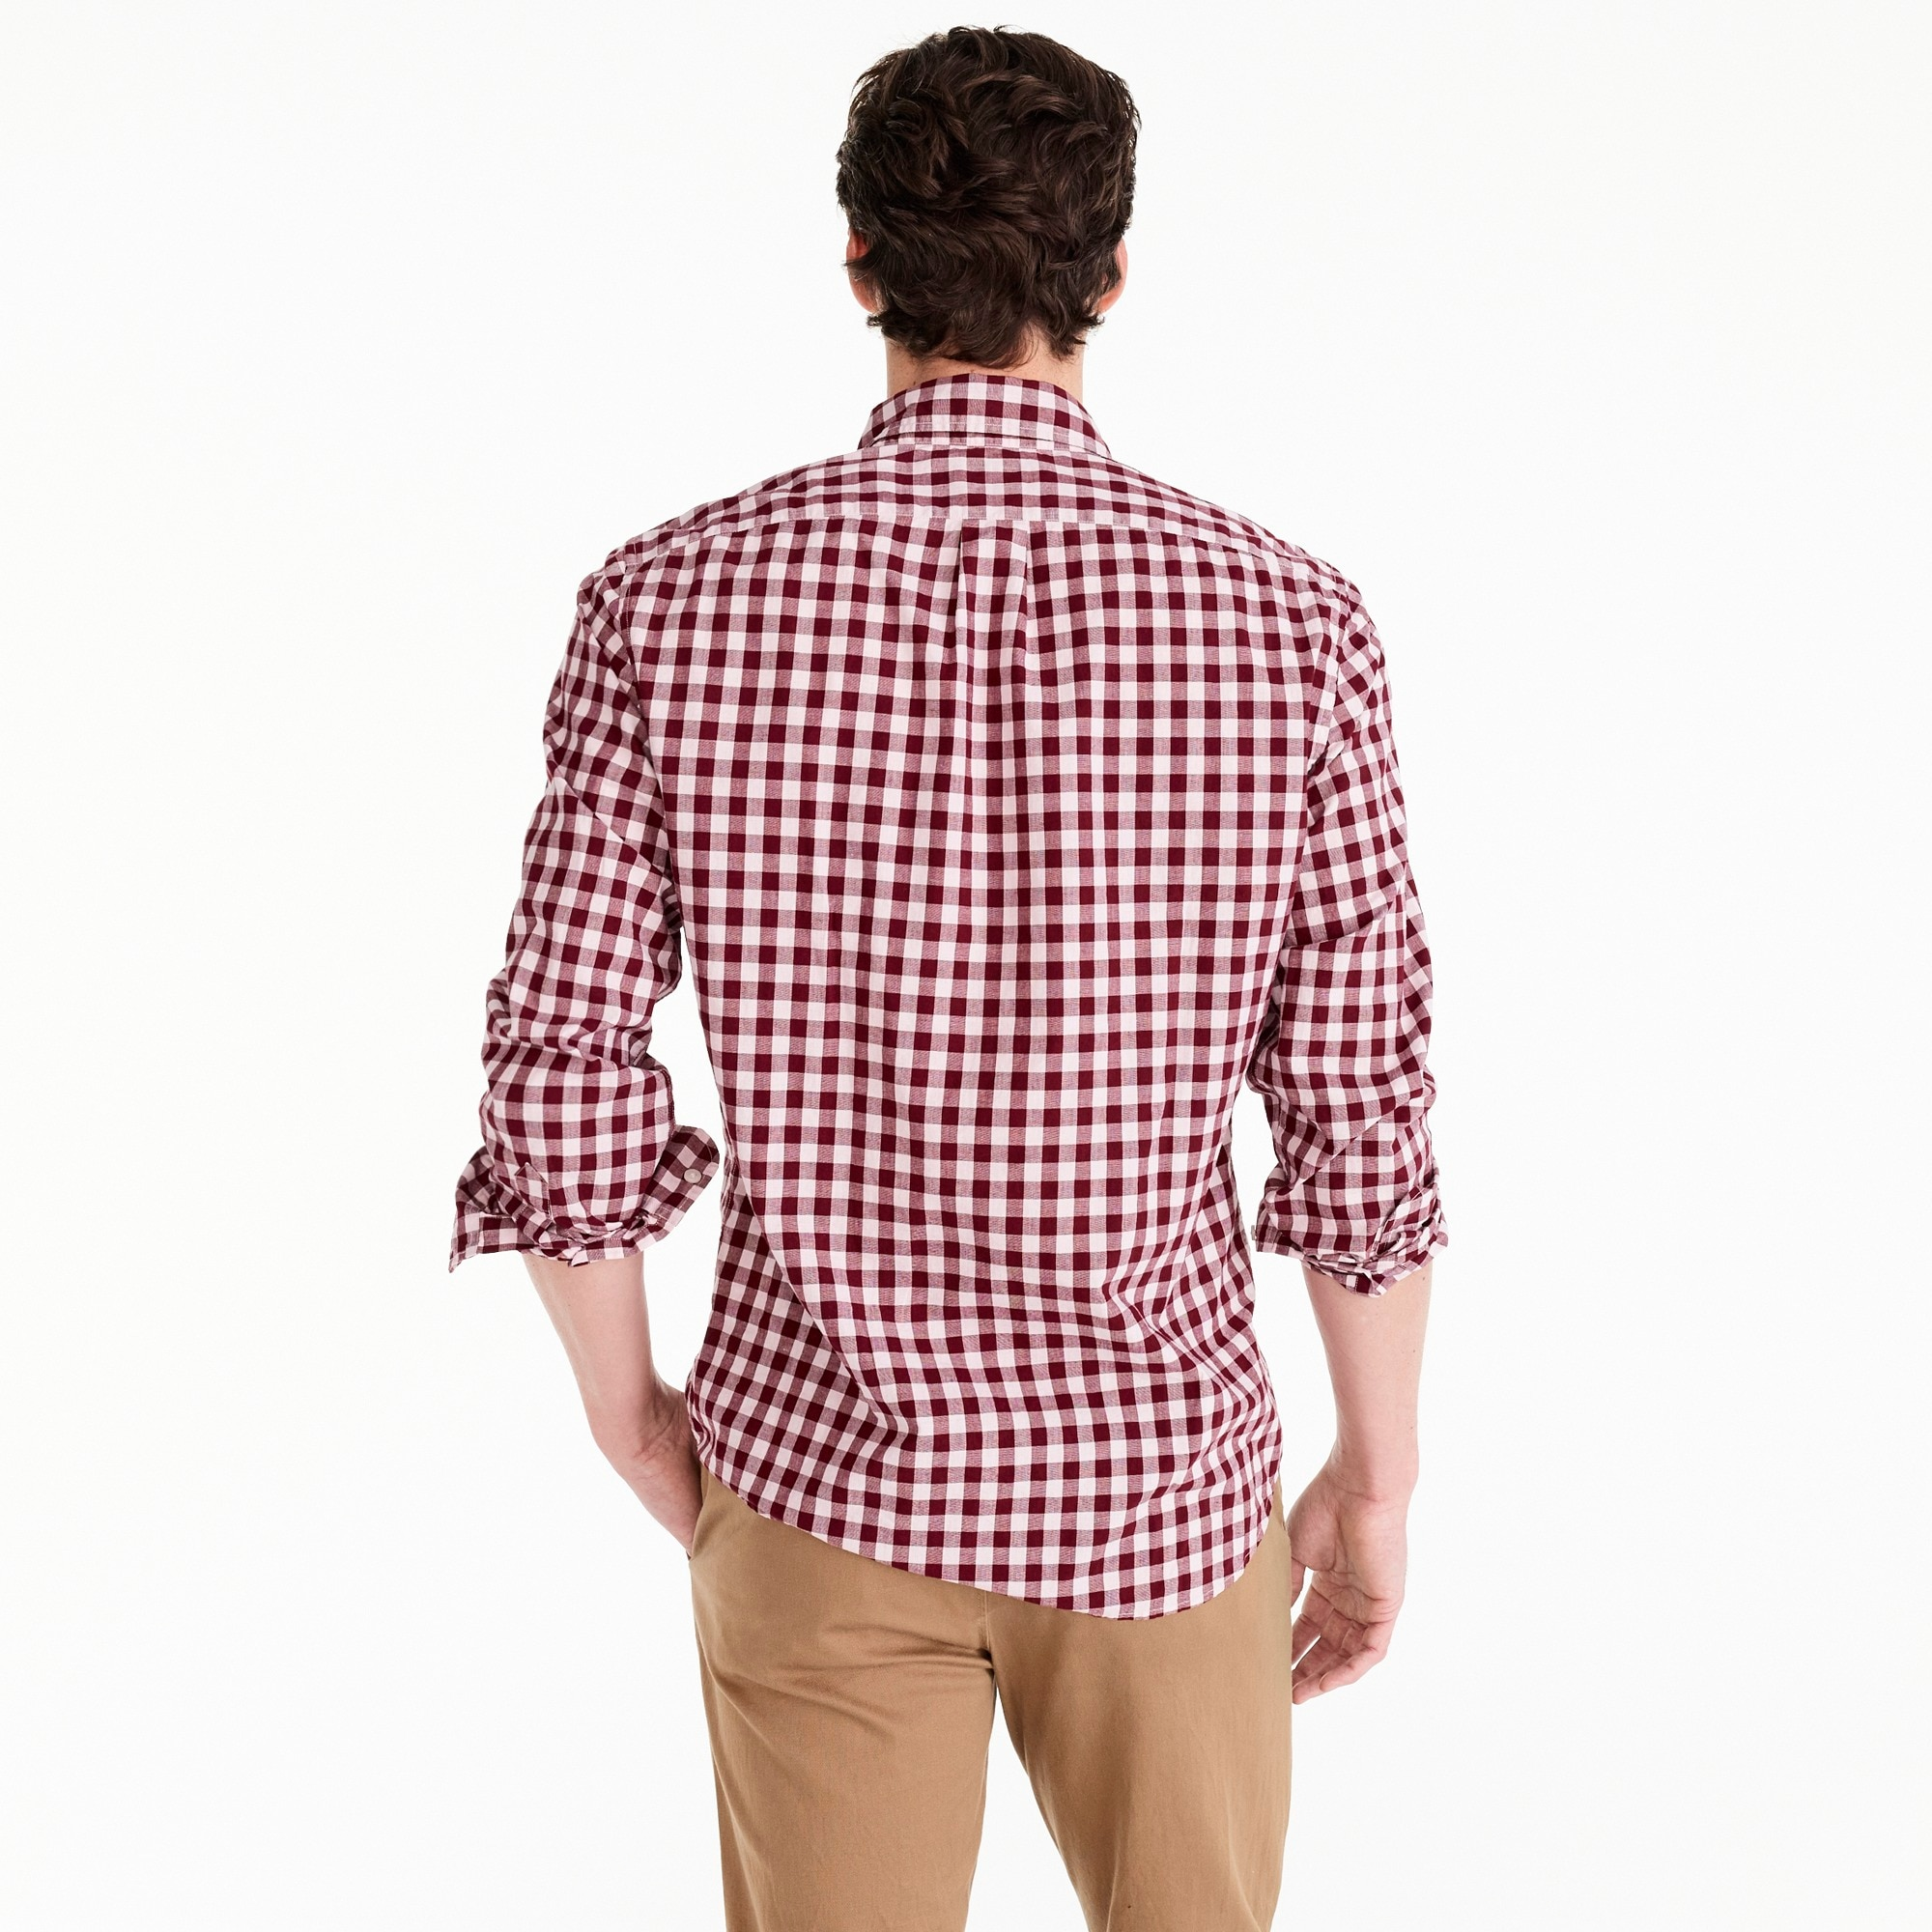 Image 3 for Slim stretch Secret Wash shirt in heather poplin gingham